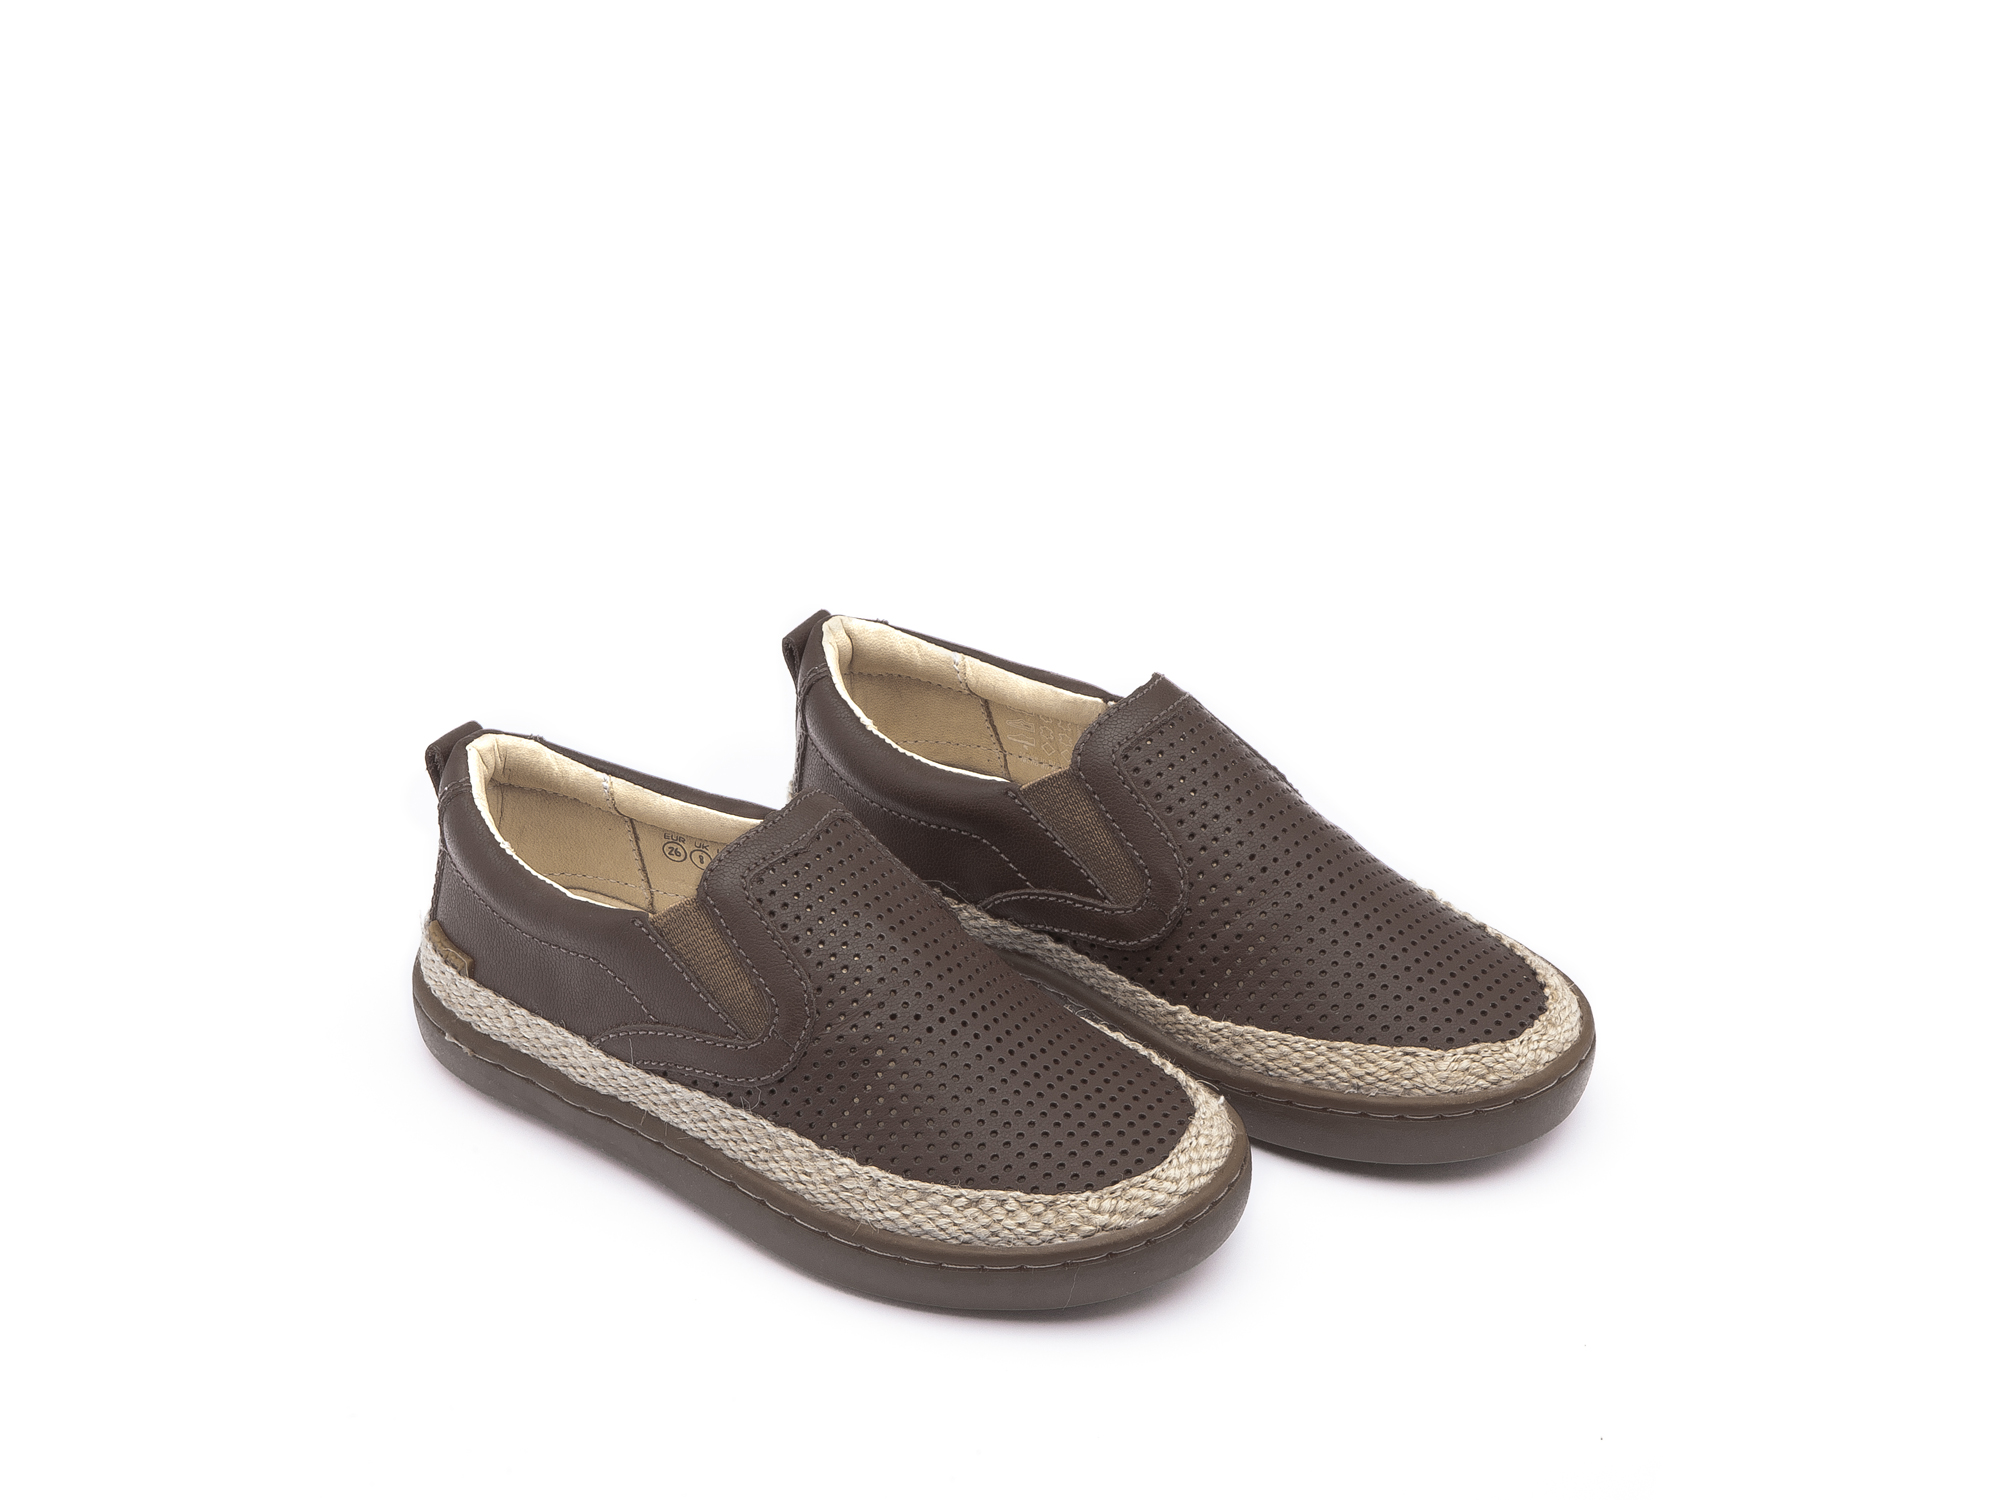 Tênis Little Straw Old Brown Holes/ Old Brown Toddler 2 à 4 anos - 0